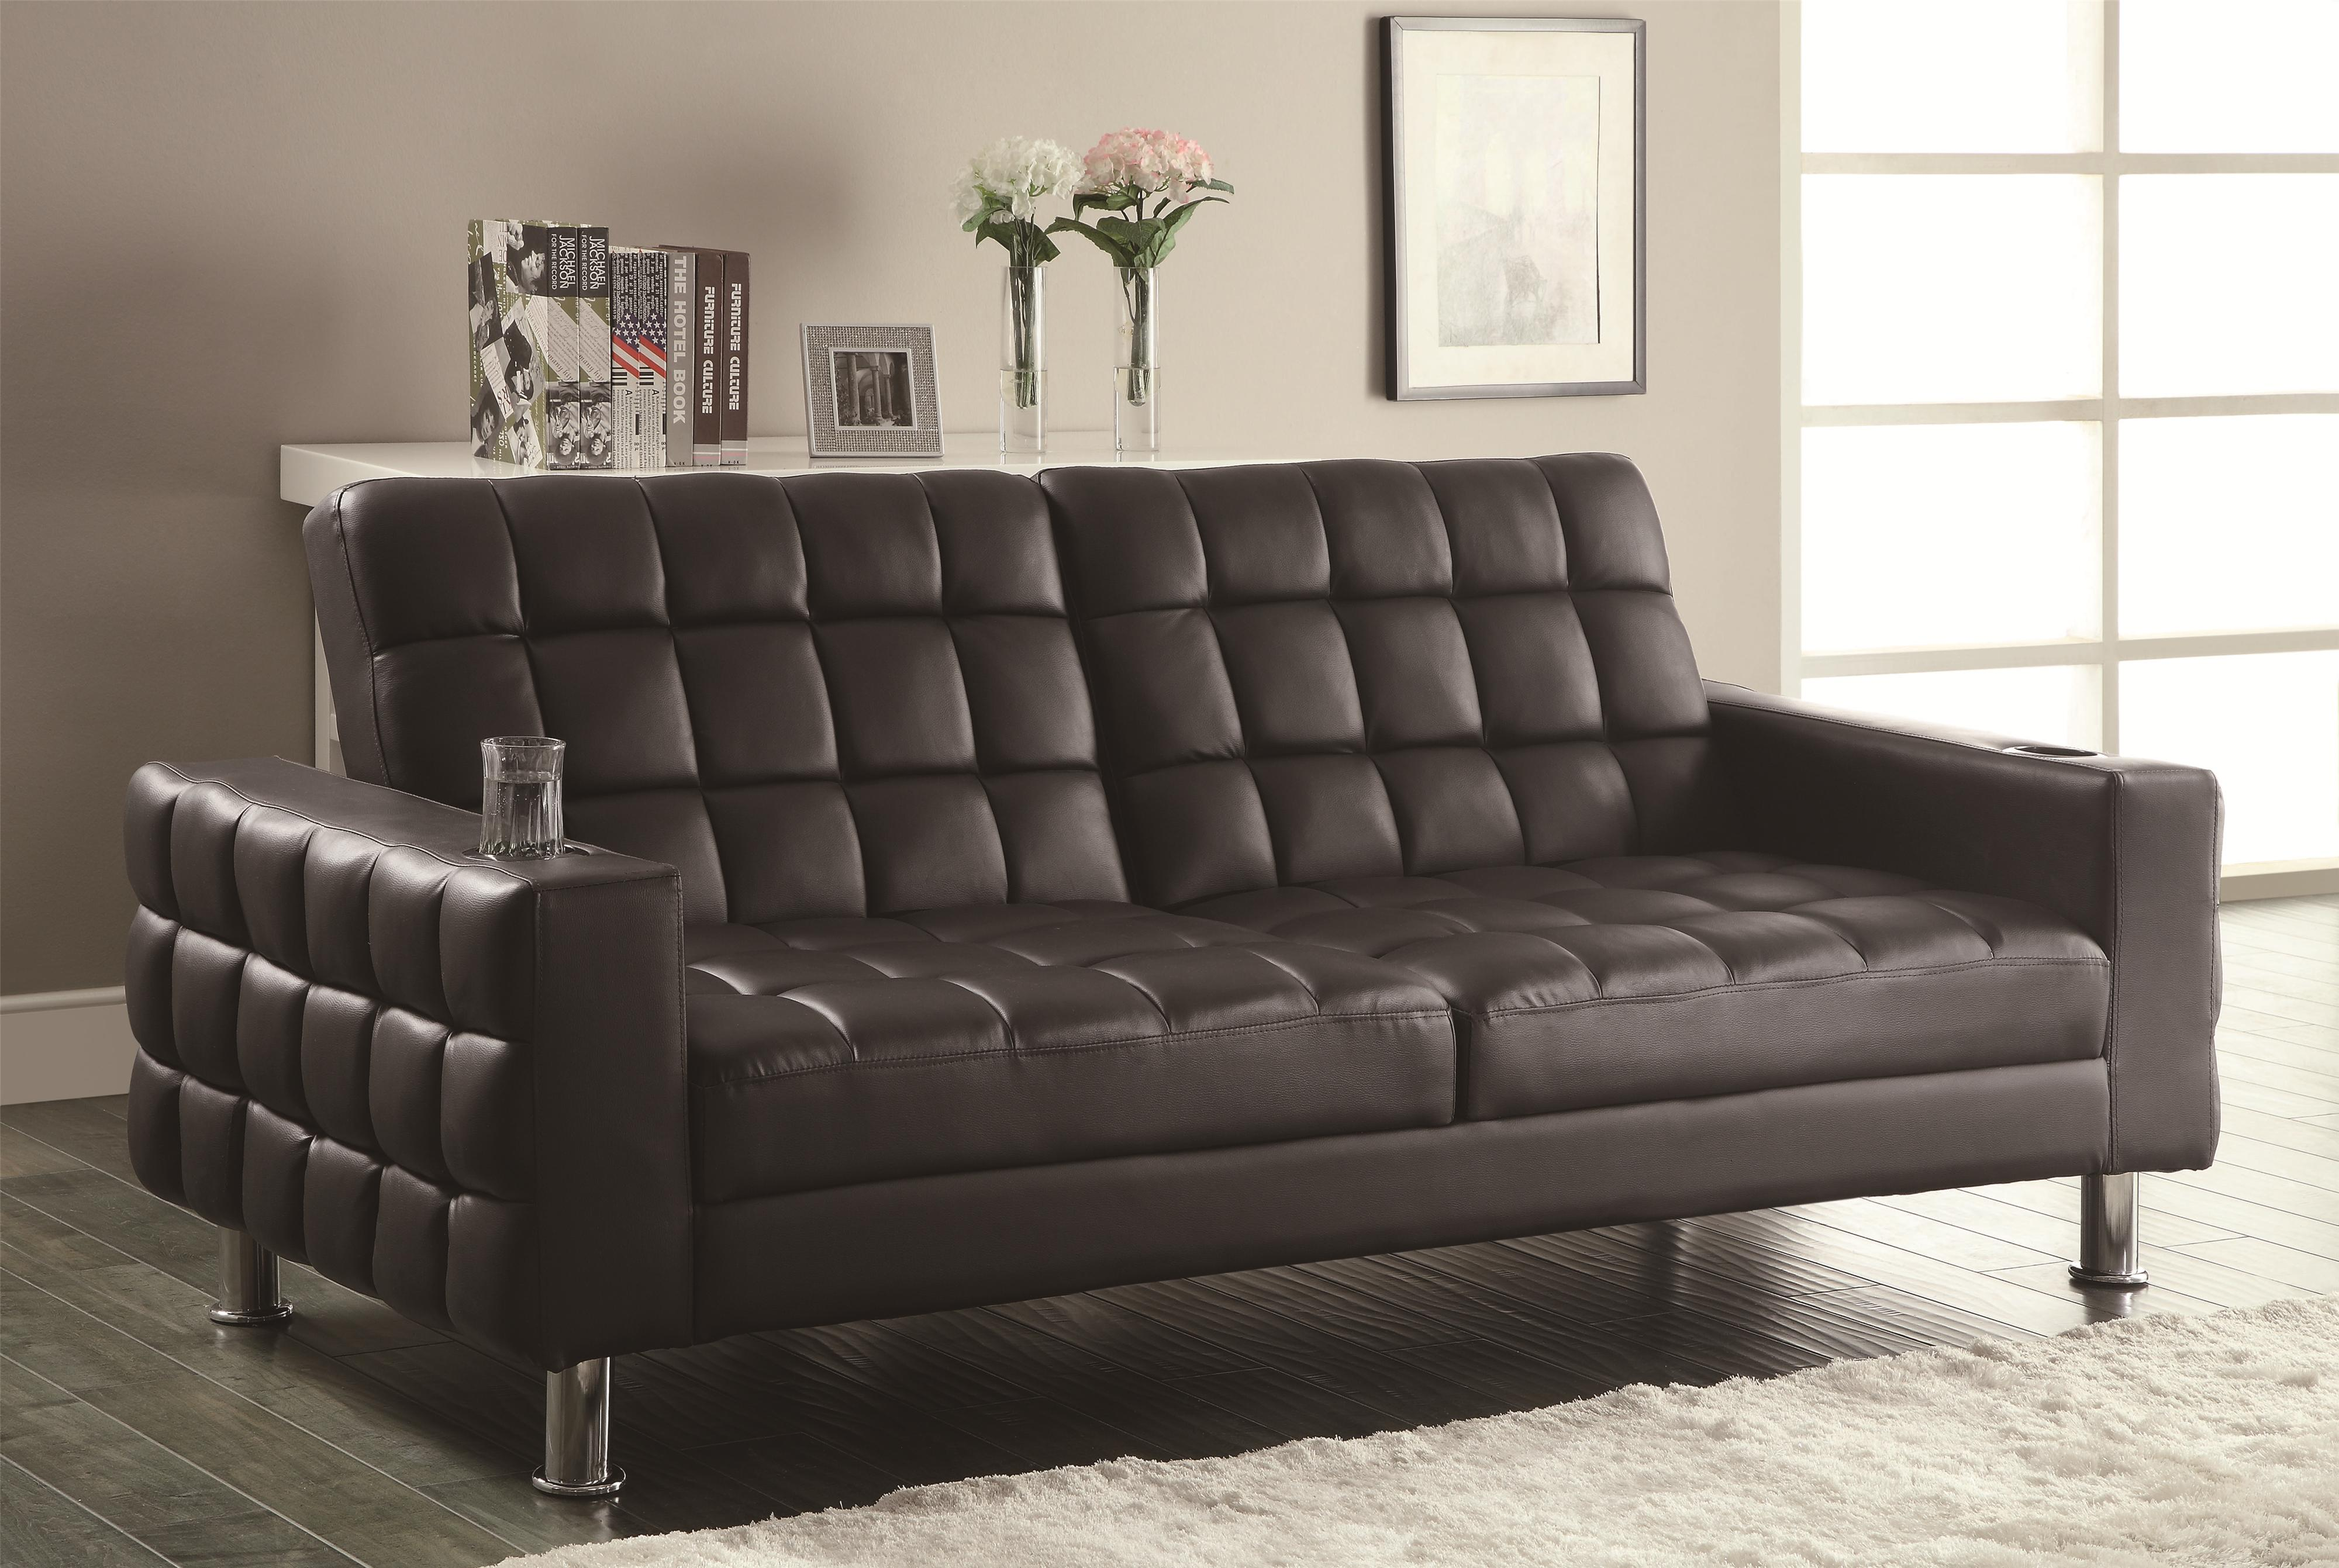 coaster sofa beds and futons adjustable sofa bed with cup. Black Bedroom Furniture Sets. Home Design Ideas